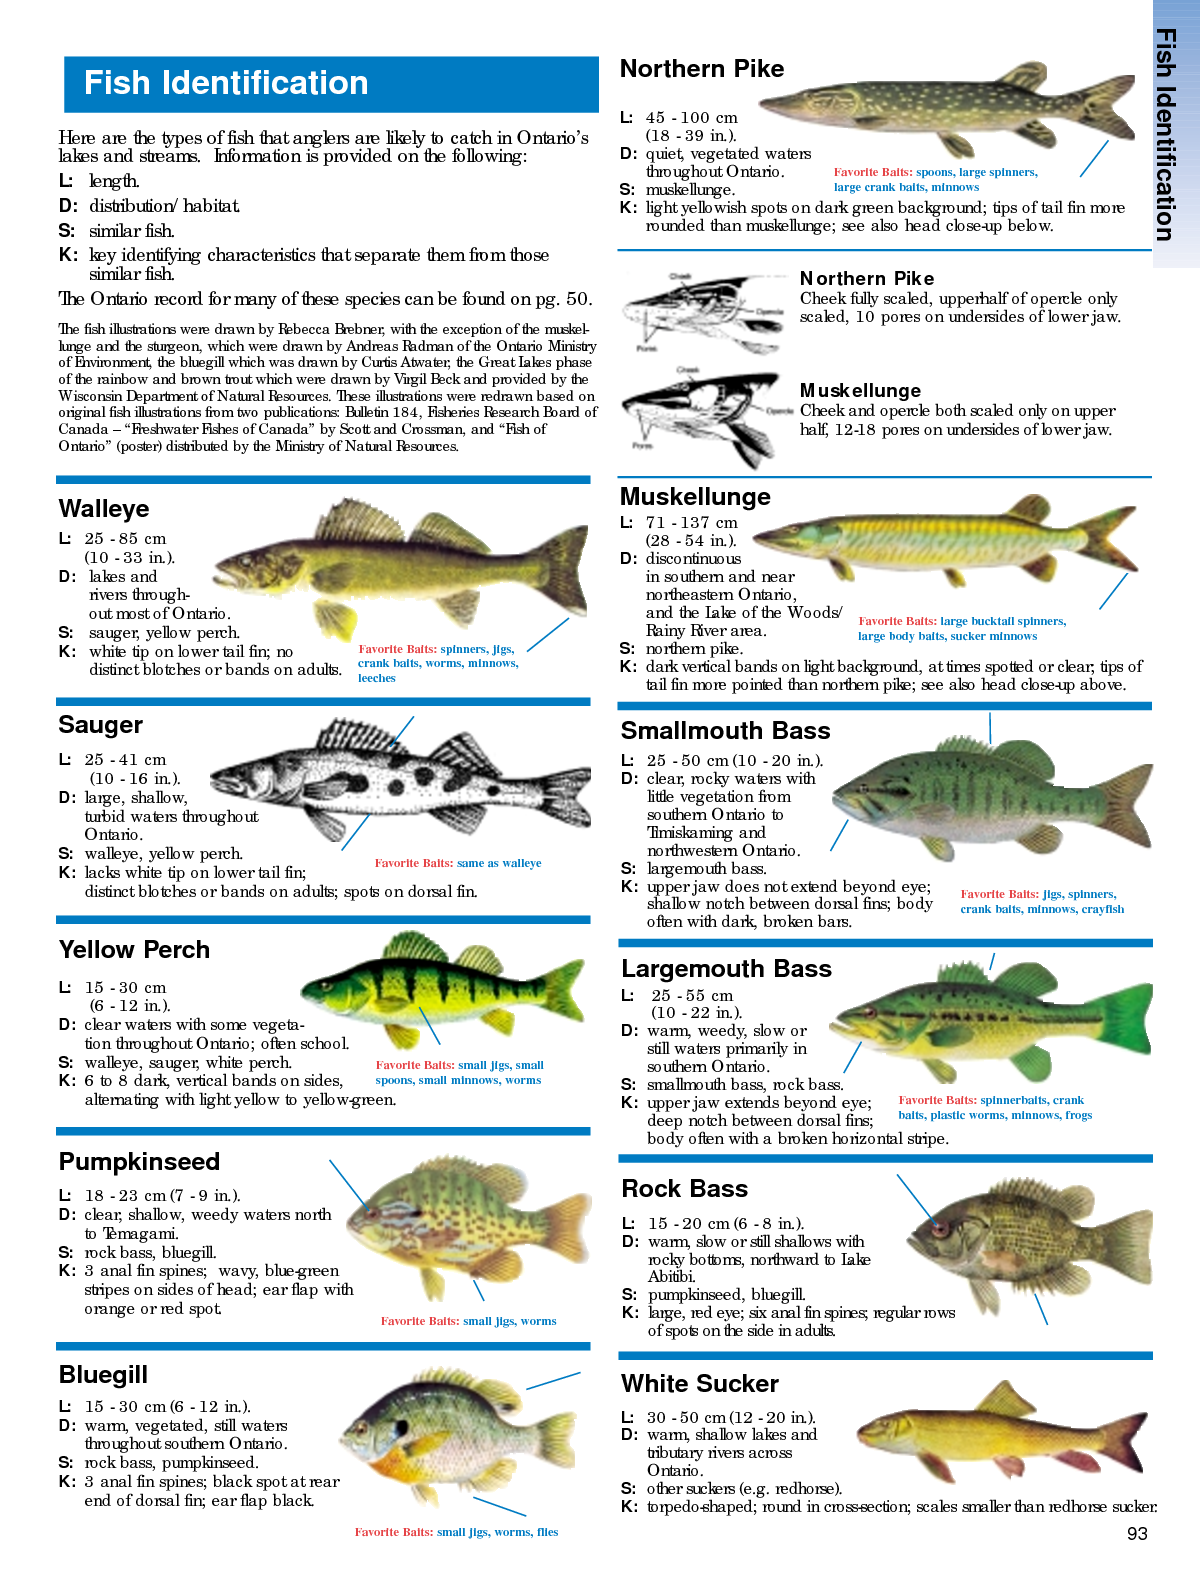 Google Image Result For Http Img Docstoccdn Com Thumb Orig 85419333 Png One Fish Outdoor Life Fish